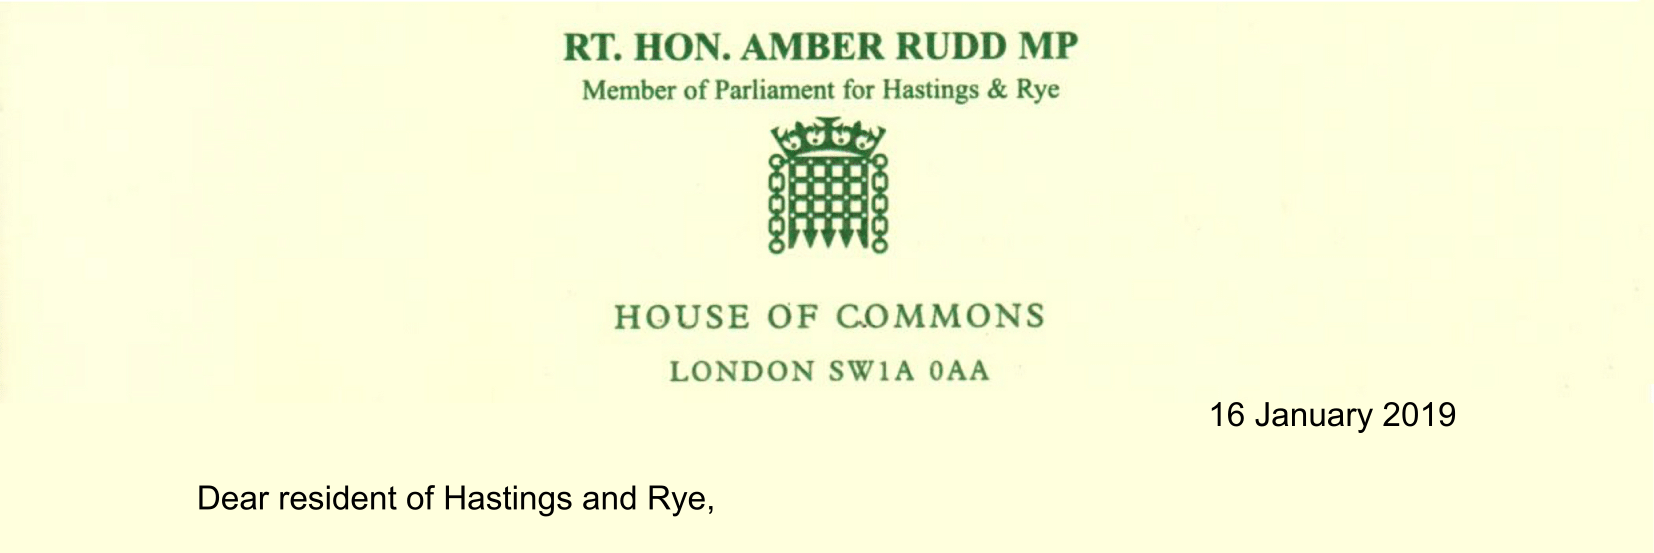 MP writes open letter to constituents pledging continued support for beleaguered PM